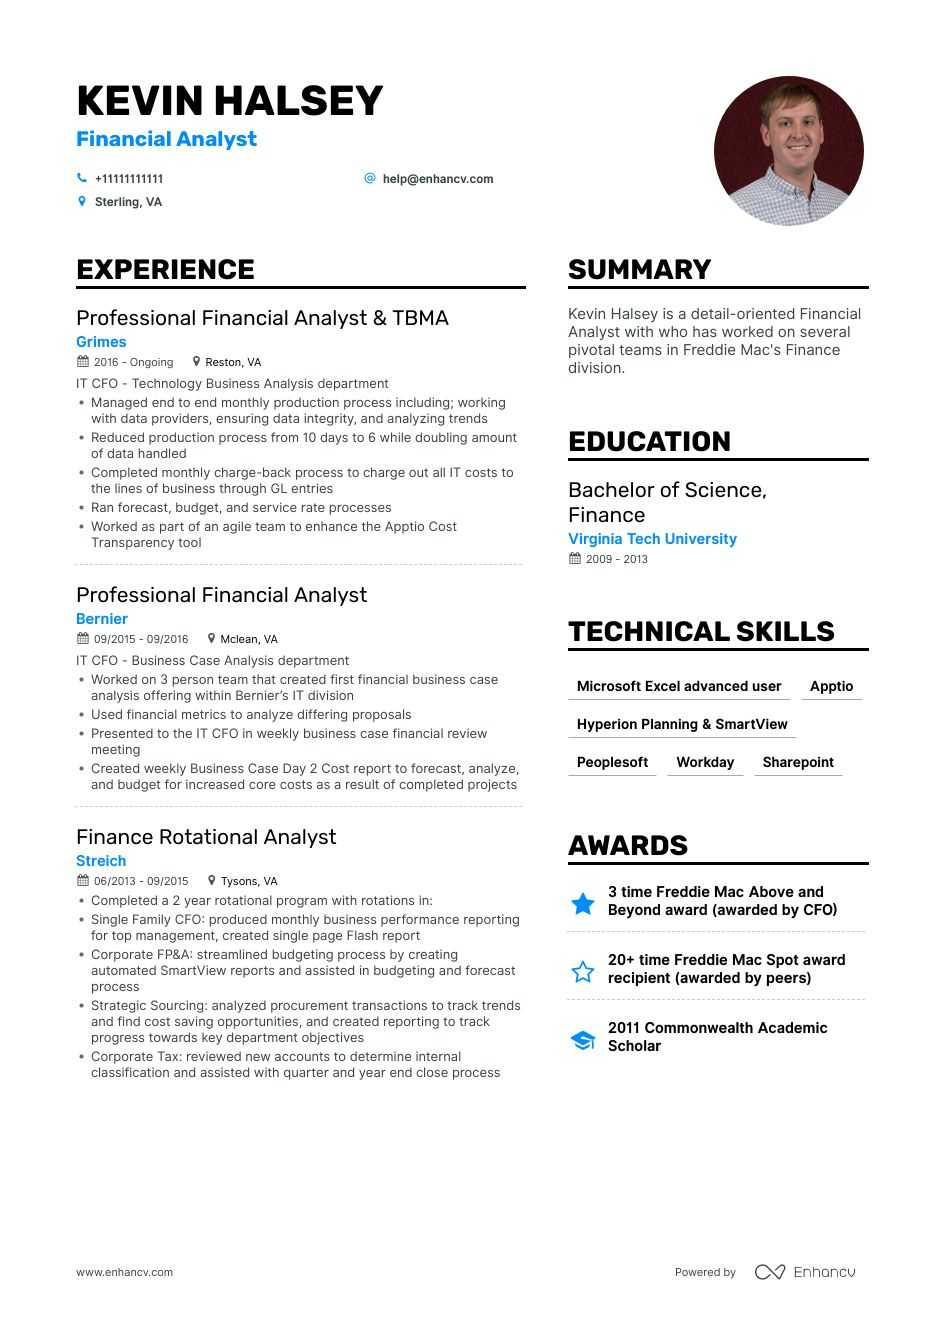 financial analyst resume example for enhancv sample fresh graduate references on sports Resume Financial Analyst Resume Sample Fresh Graduate